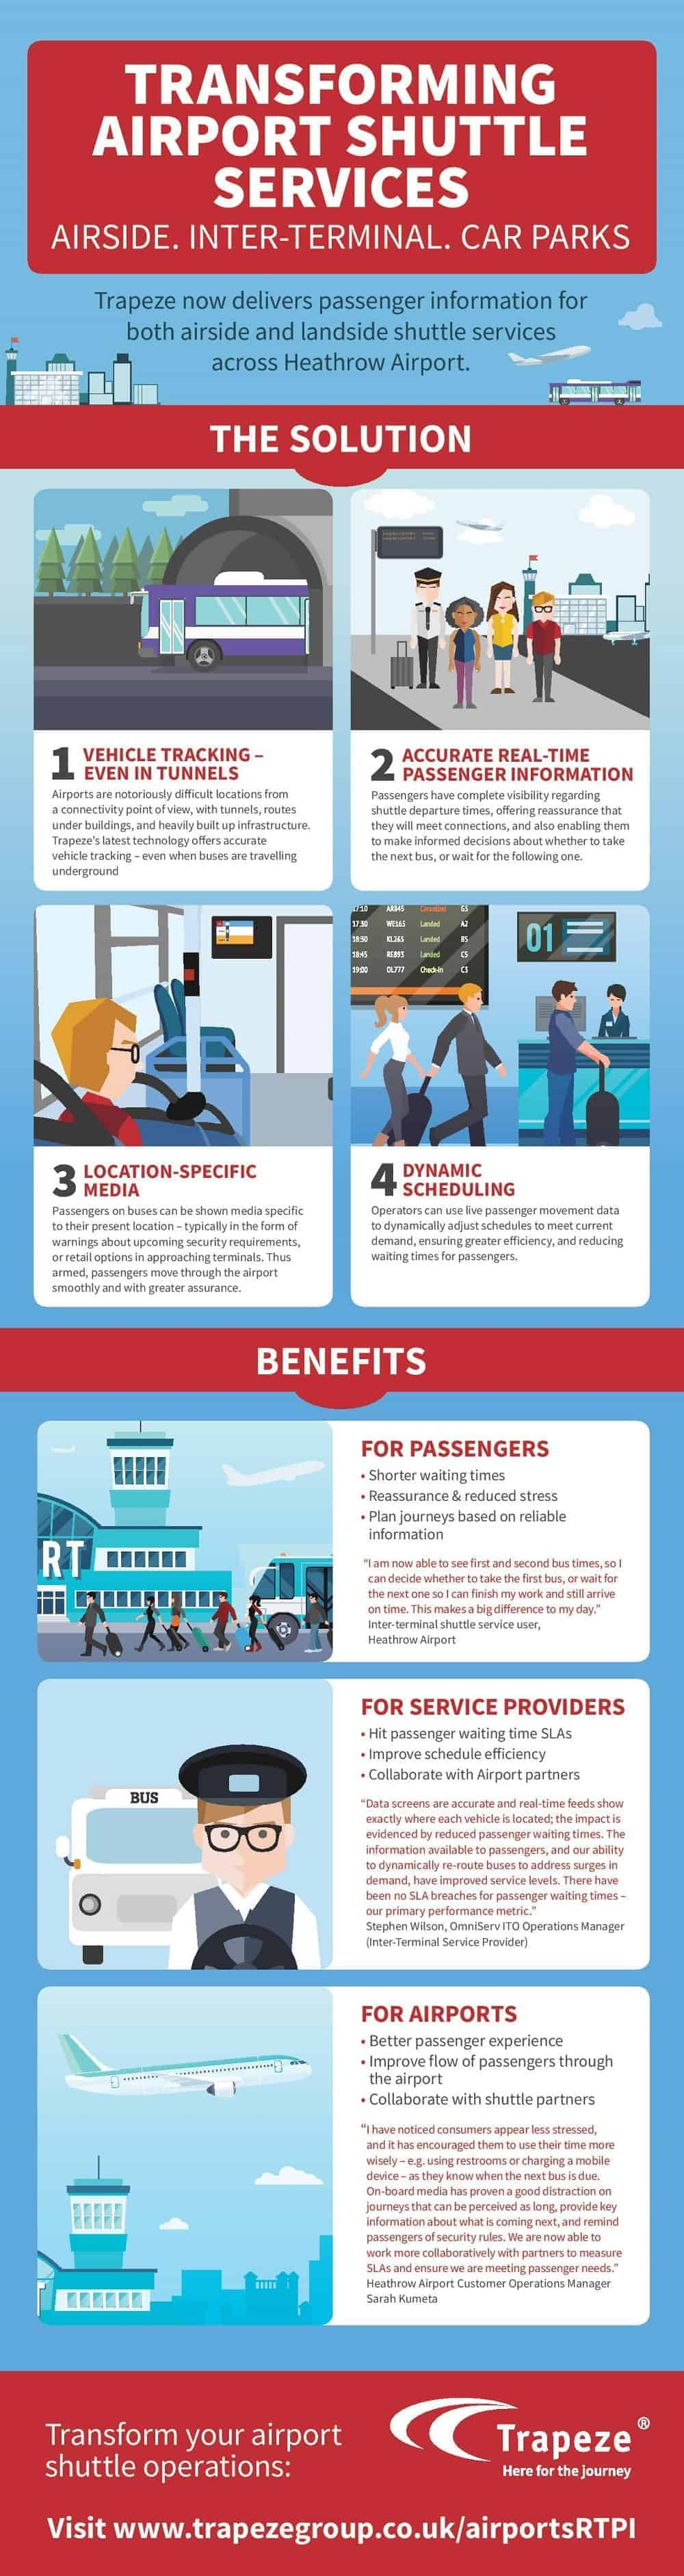 airport shuttle service infographic